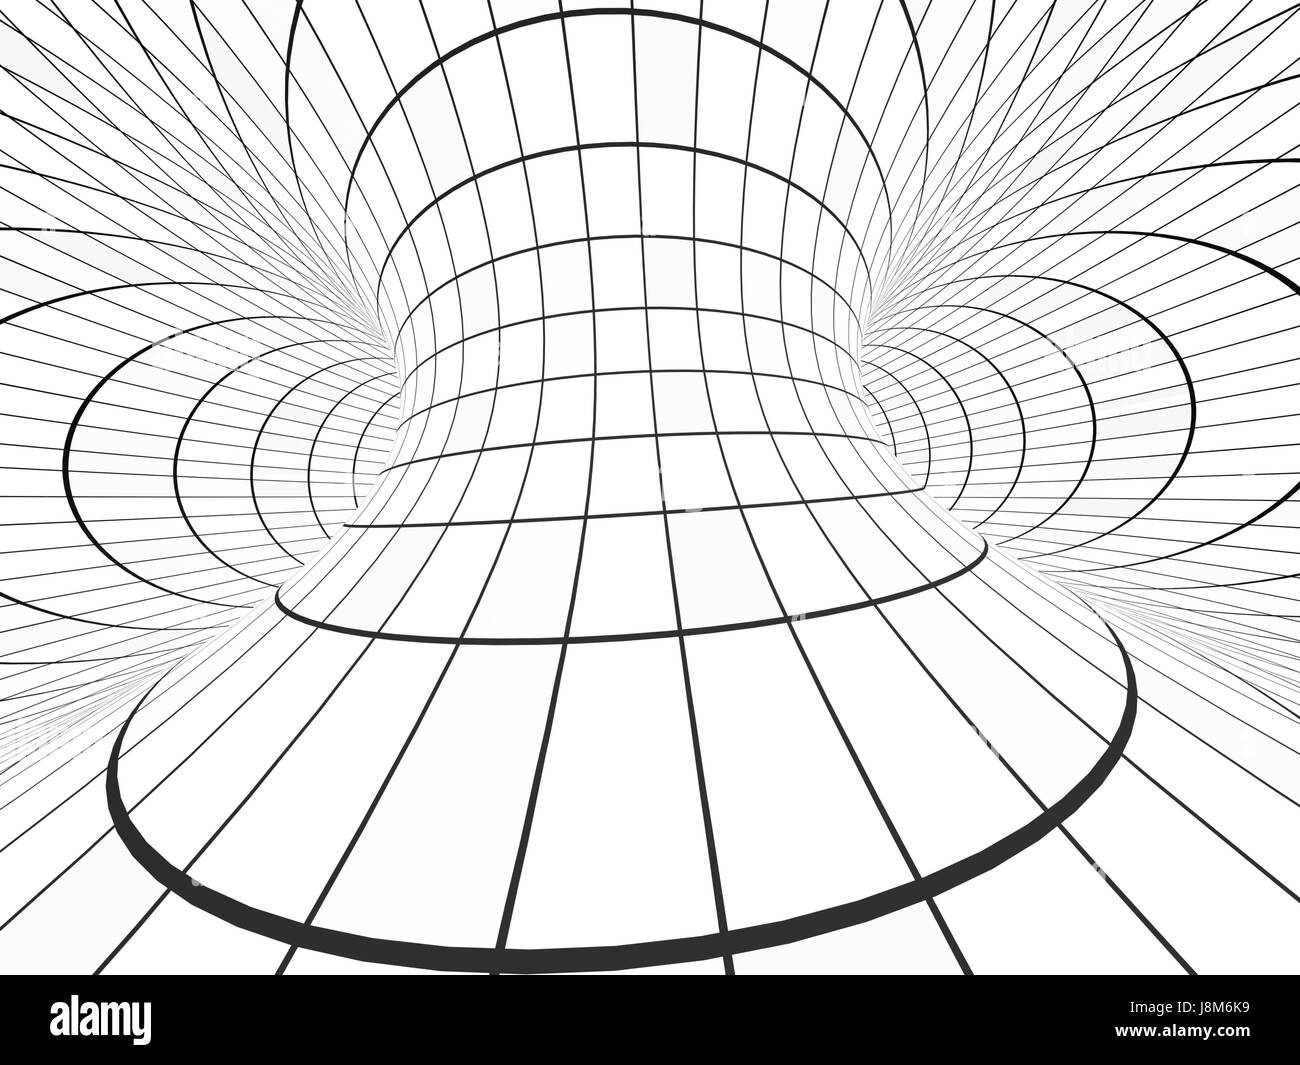 helix loop black and white stock photos images alamy  abstract illusion black and white background with tube shape with checkered pattern 3d